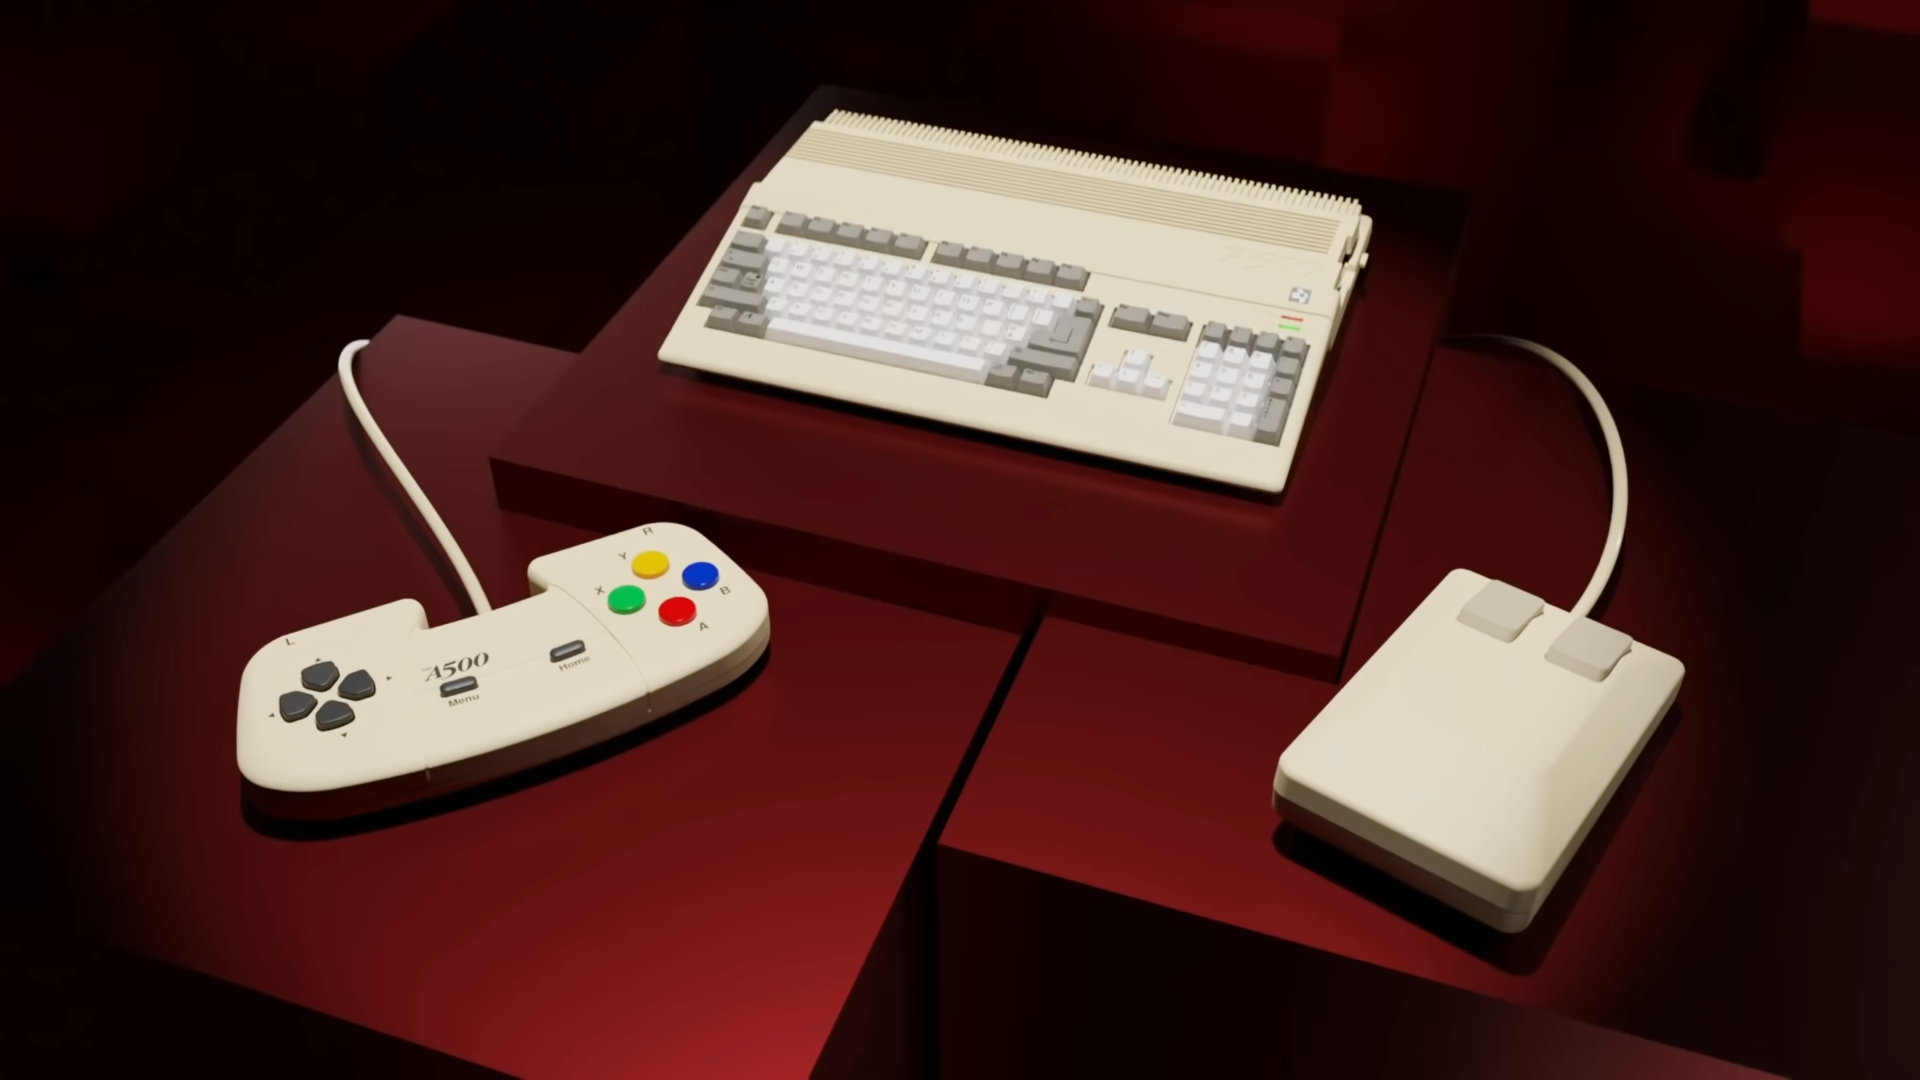 The A500 Mini brings back Amiga classic games like Worms and Zool